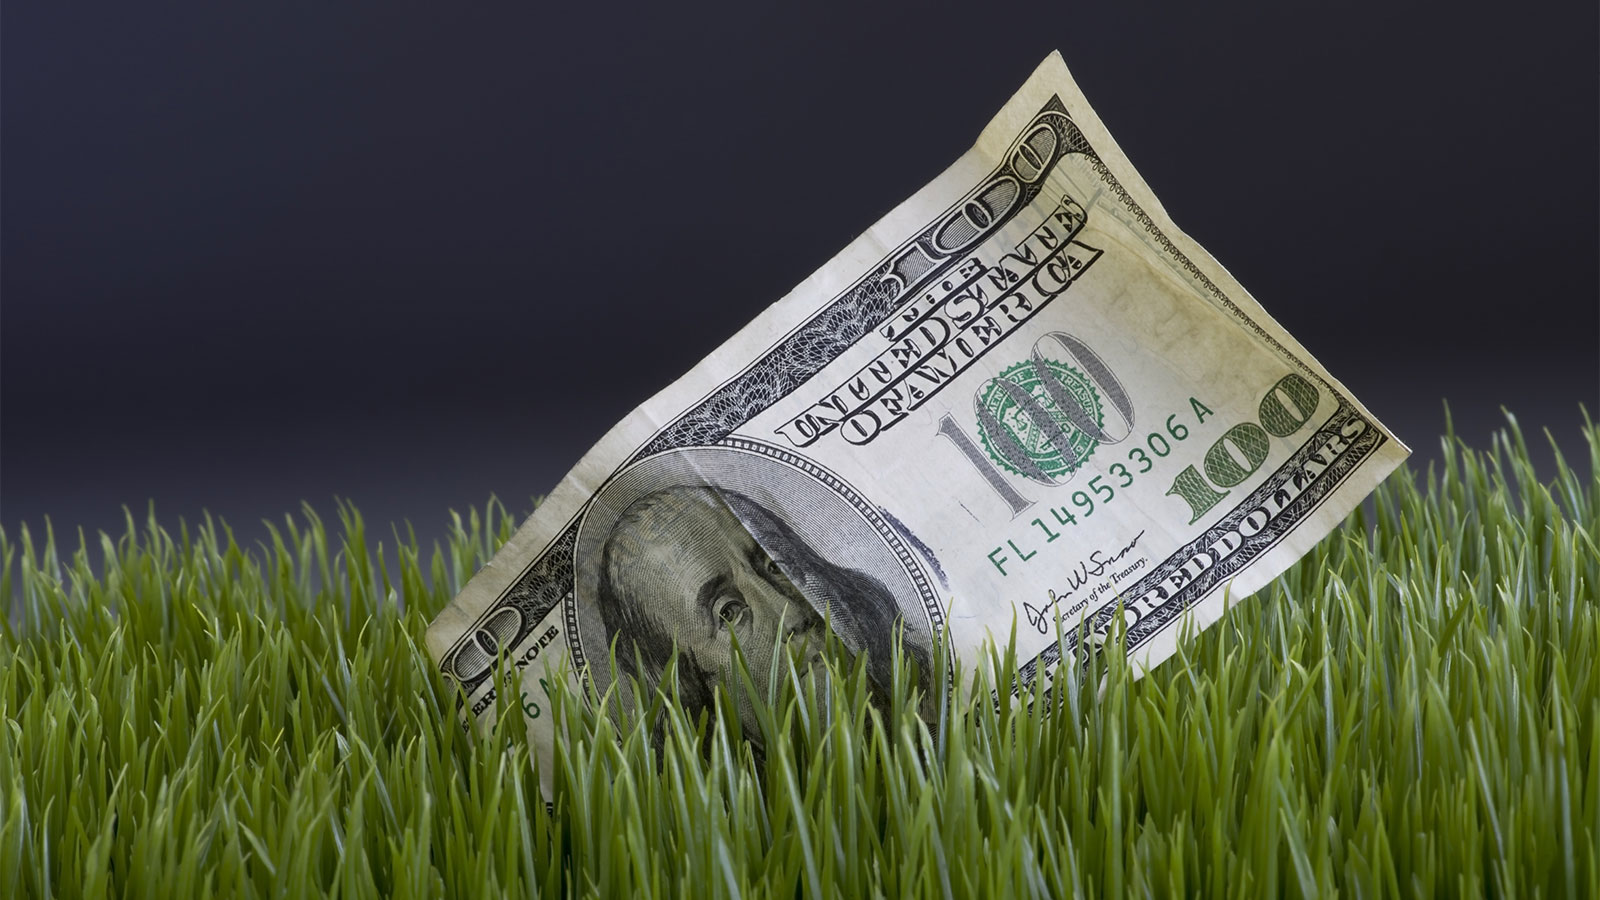 Cash in the grass